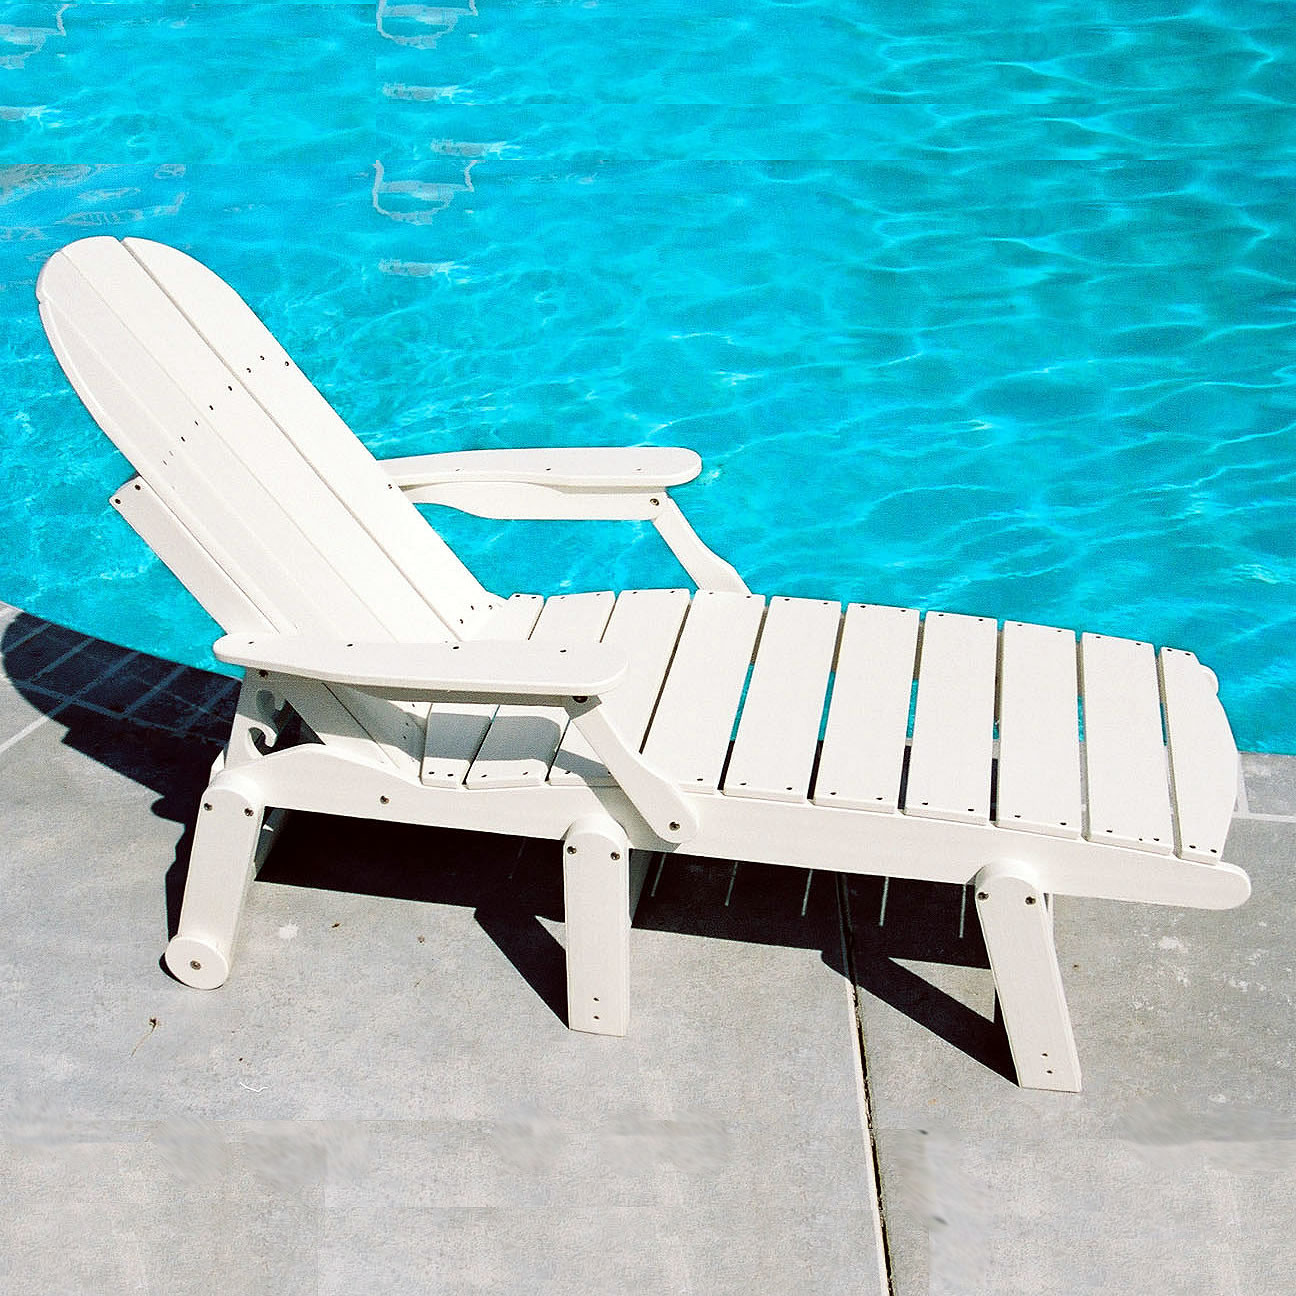 Tailwind Chaise Lounge - With Arms